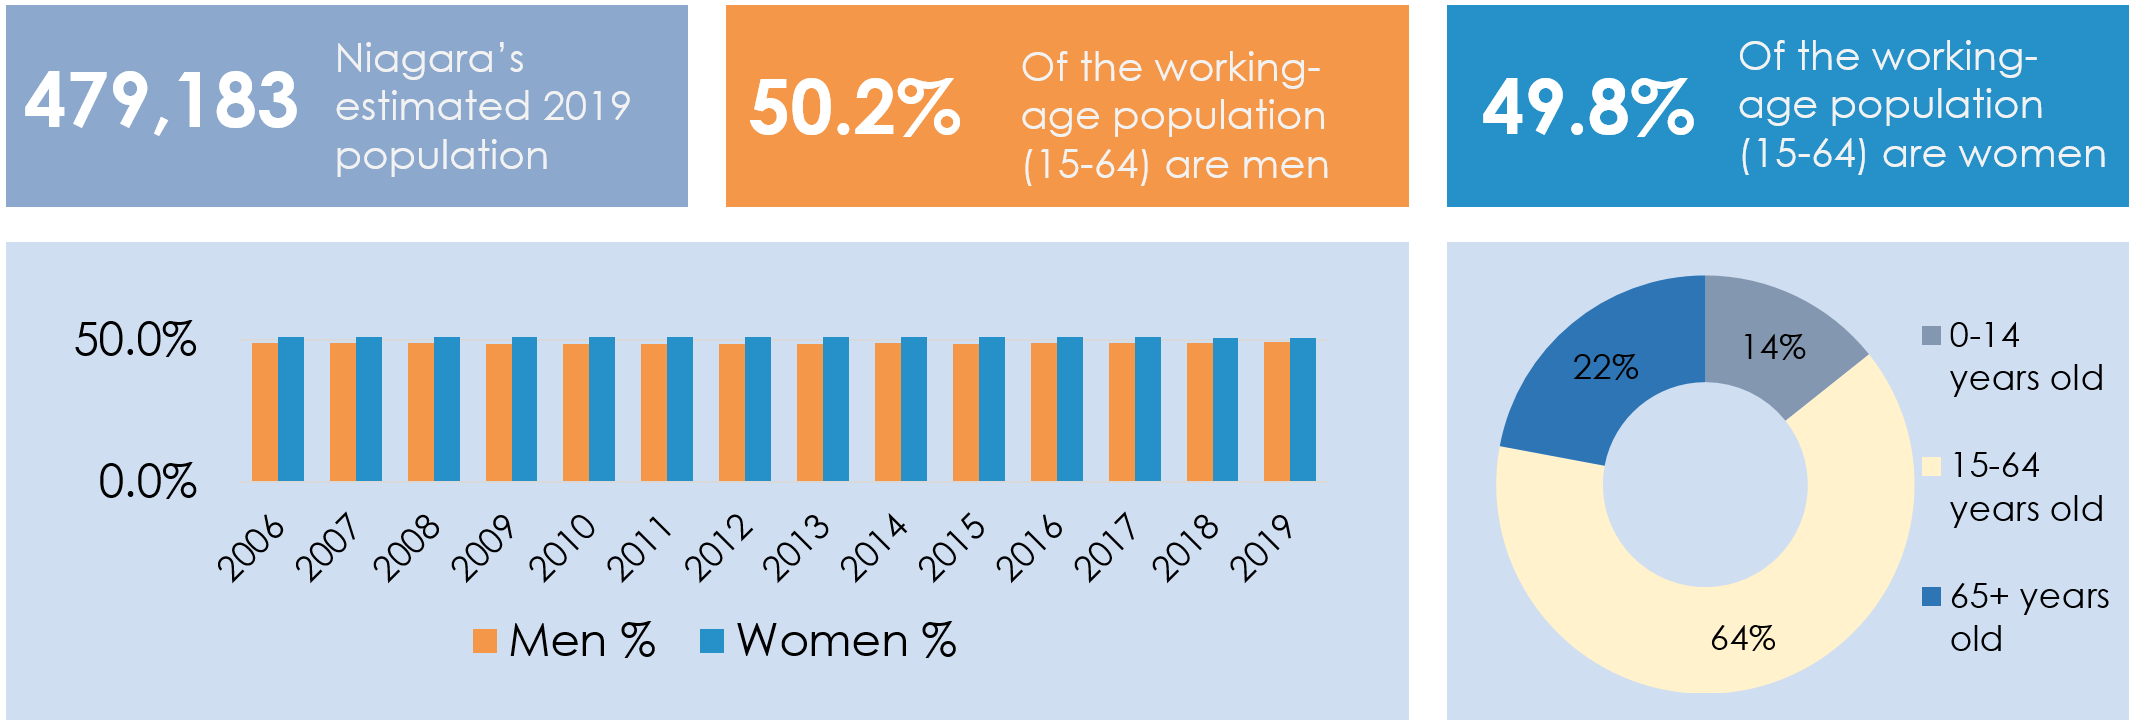 Infographic showing the following data: Niagara's estimated population in 2019 was 479,183. Of that population, 50.2% of the working-age population (15-64) are men, and 49.8% are women. 64% of Niagara's population fall within the working-age range, while 14% of the population ranged between 0-14 years of age and 22% was over 65 years old.